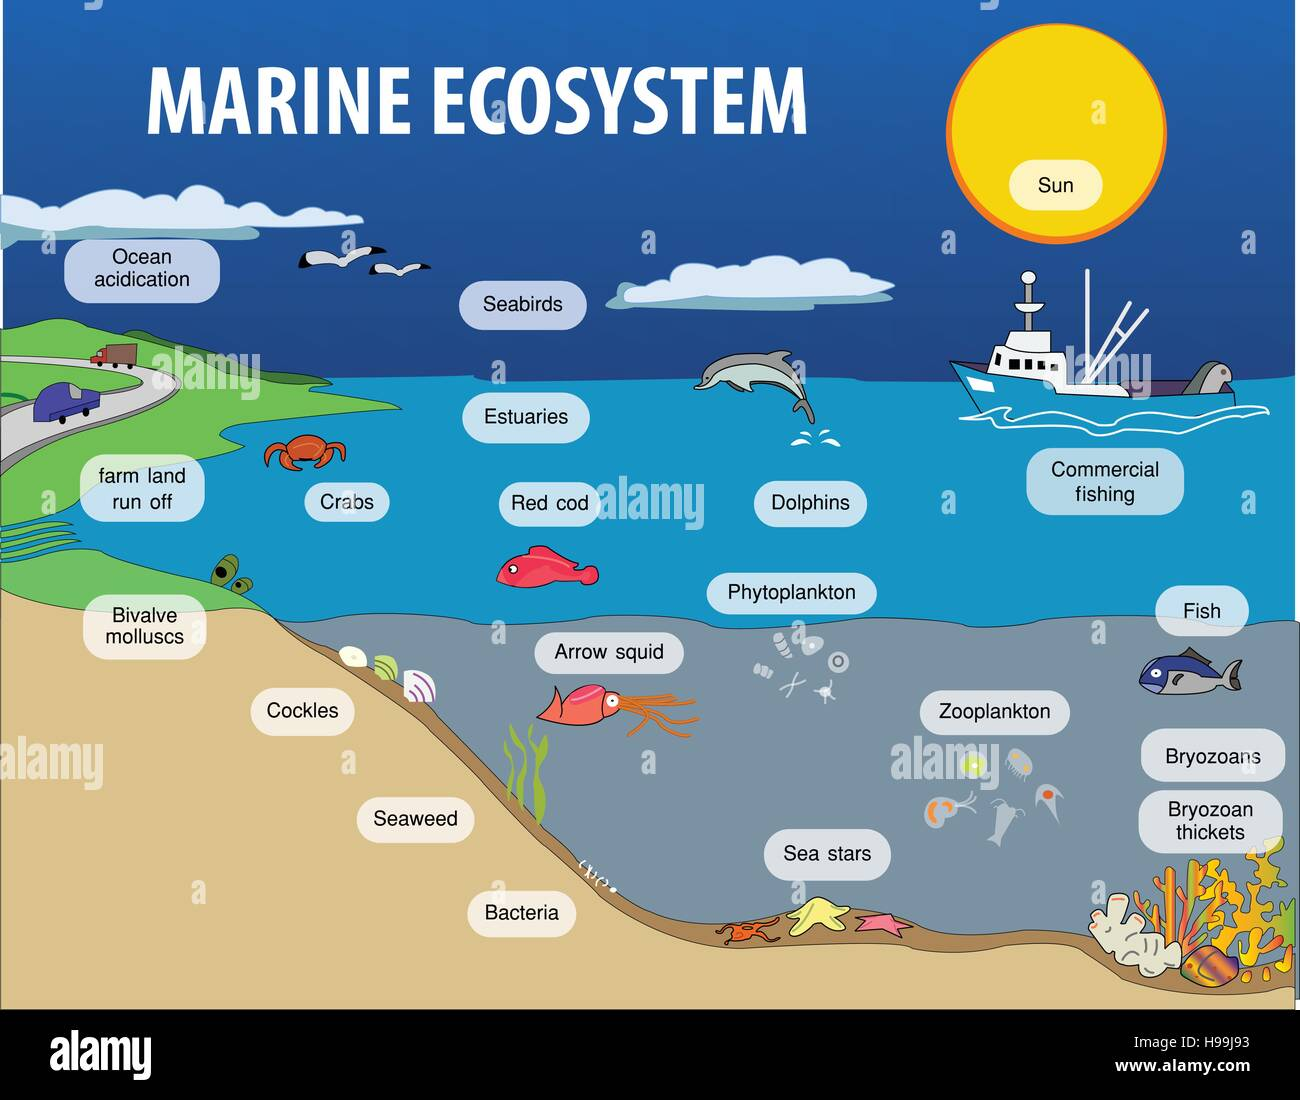 Marine Ecosystem Stock Vector Images